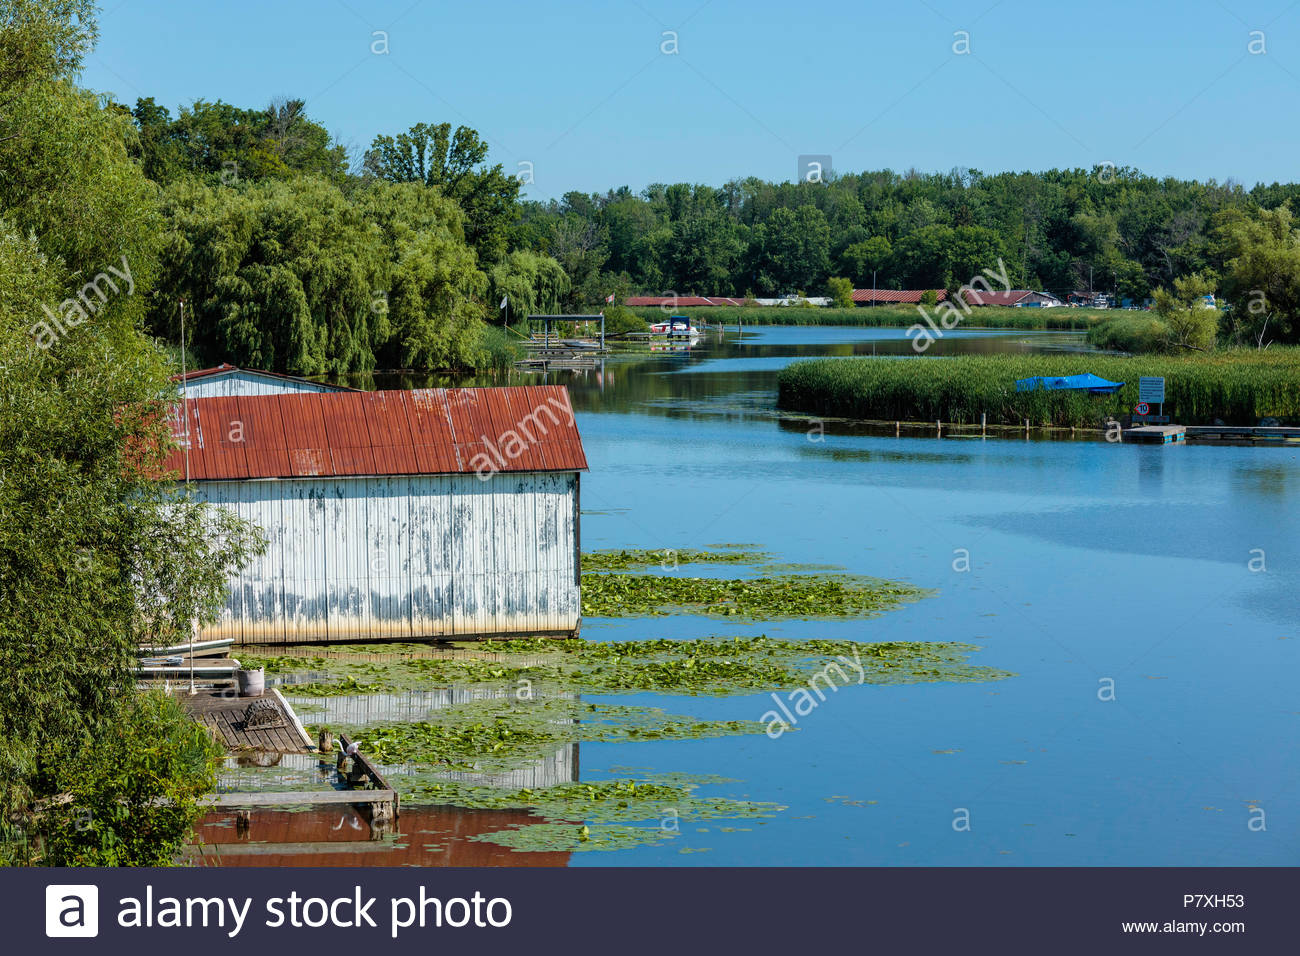 Boathouses on river in polder reclaimed marsh near Lake Simcoe and Bradford Ontario Canada Holland Marsh East Holland River - Stock Image